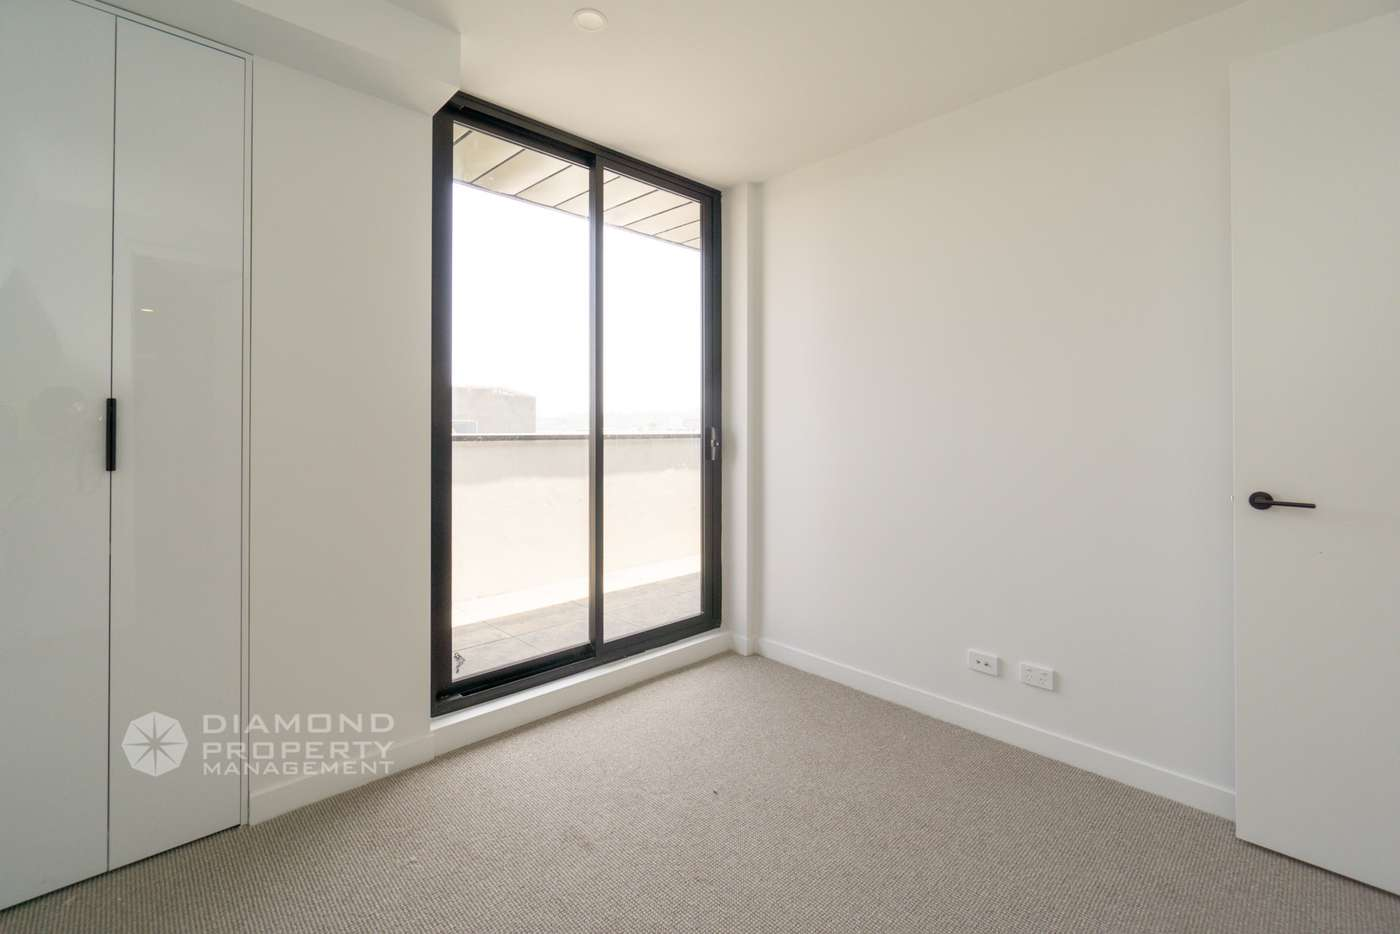 Sixth view of Homely apartment listing, Apt Two/260 Burwood Highway, Burwood VIC 3125